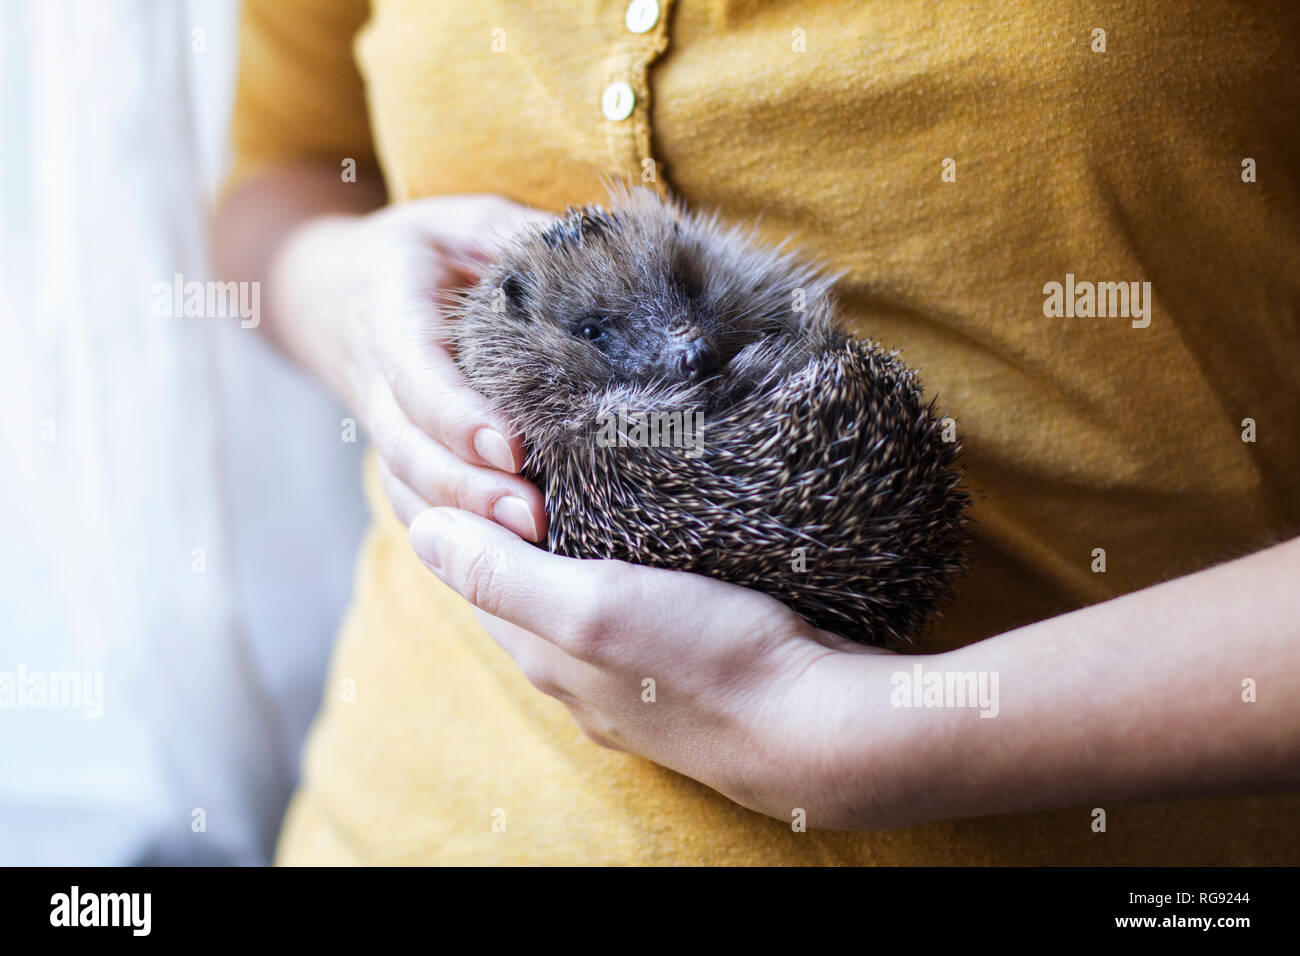 Woman's hands holding rolled up hedgehog - Stock Image